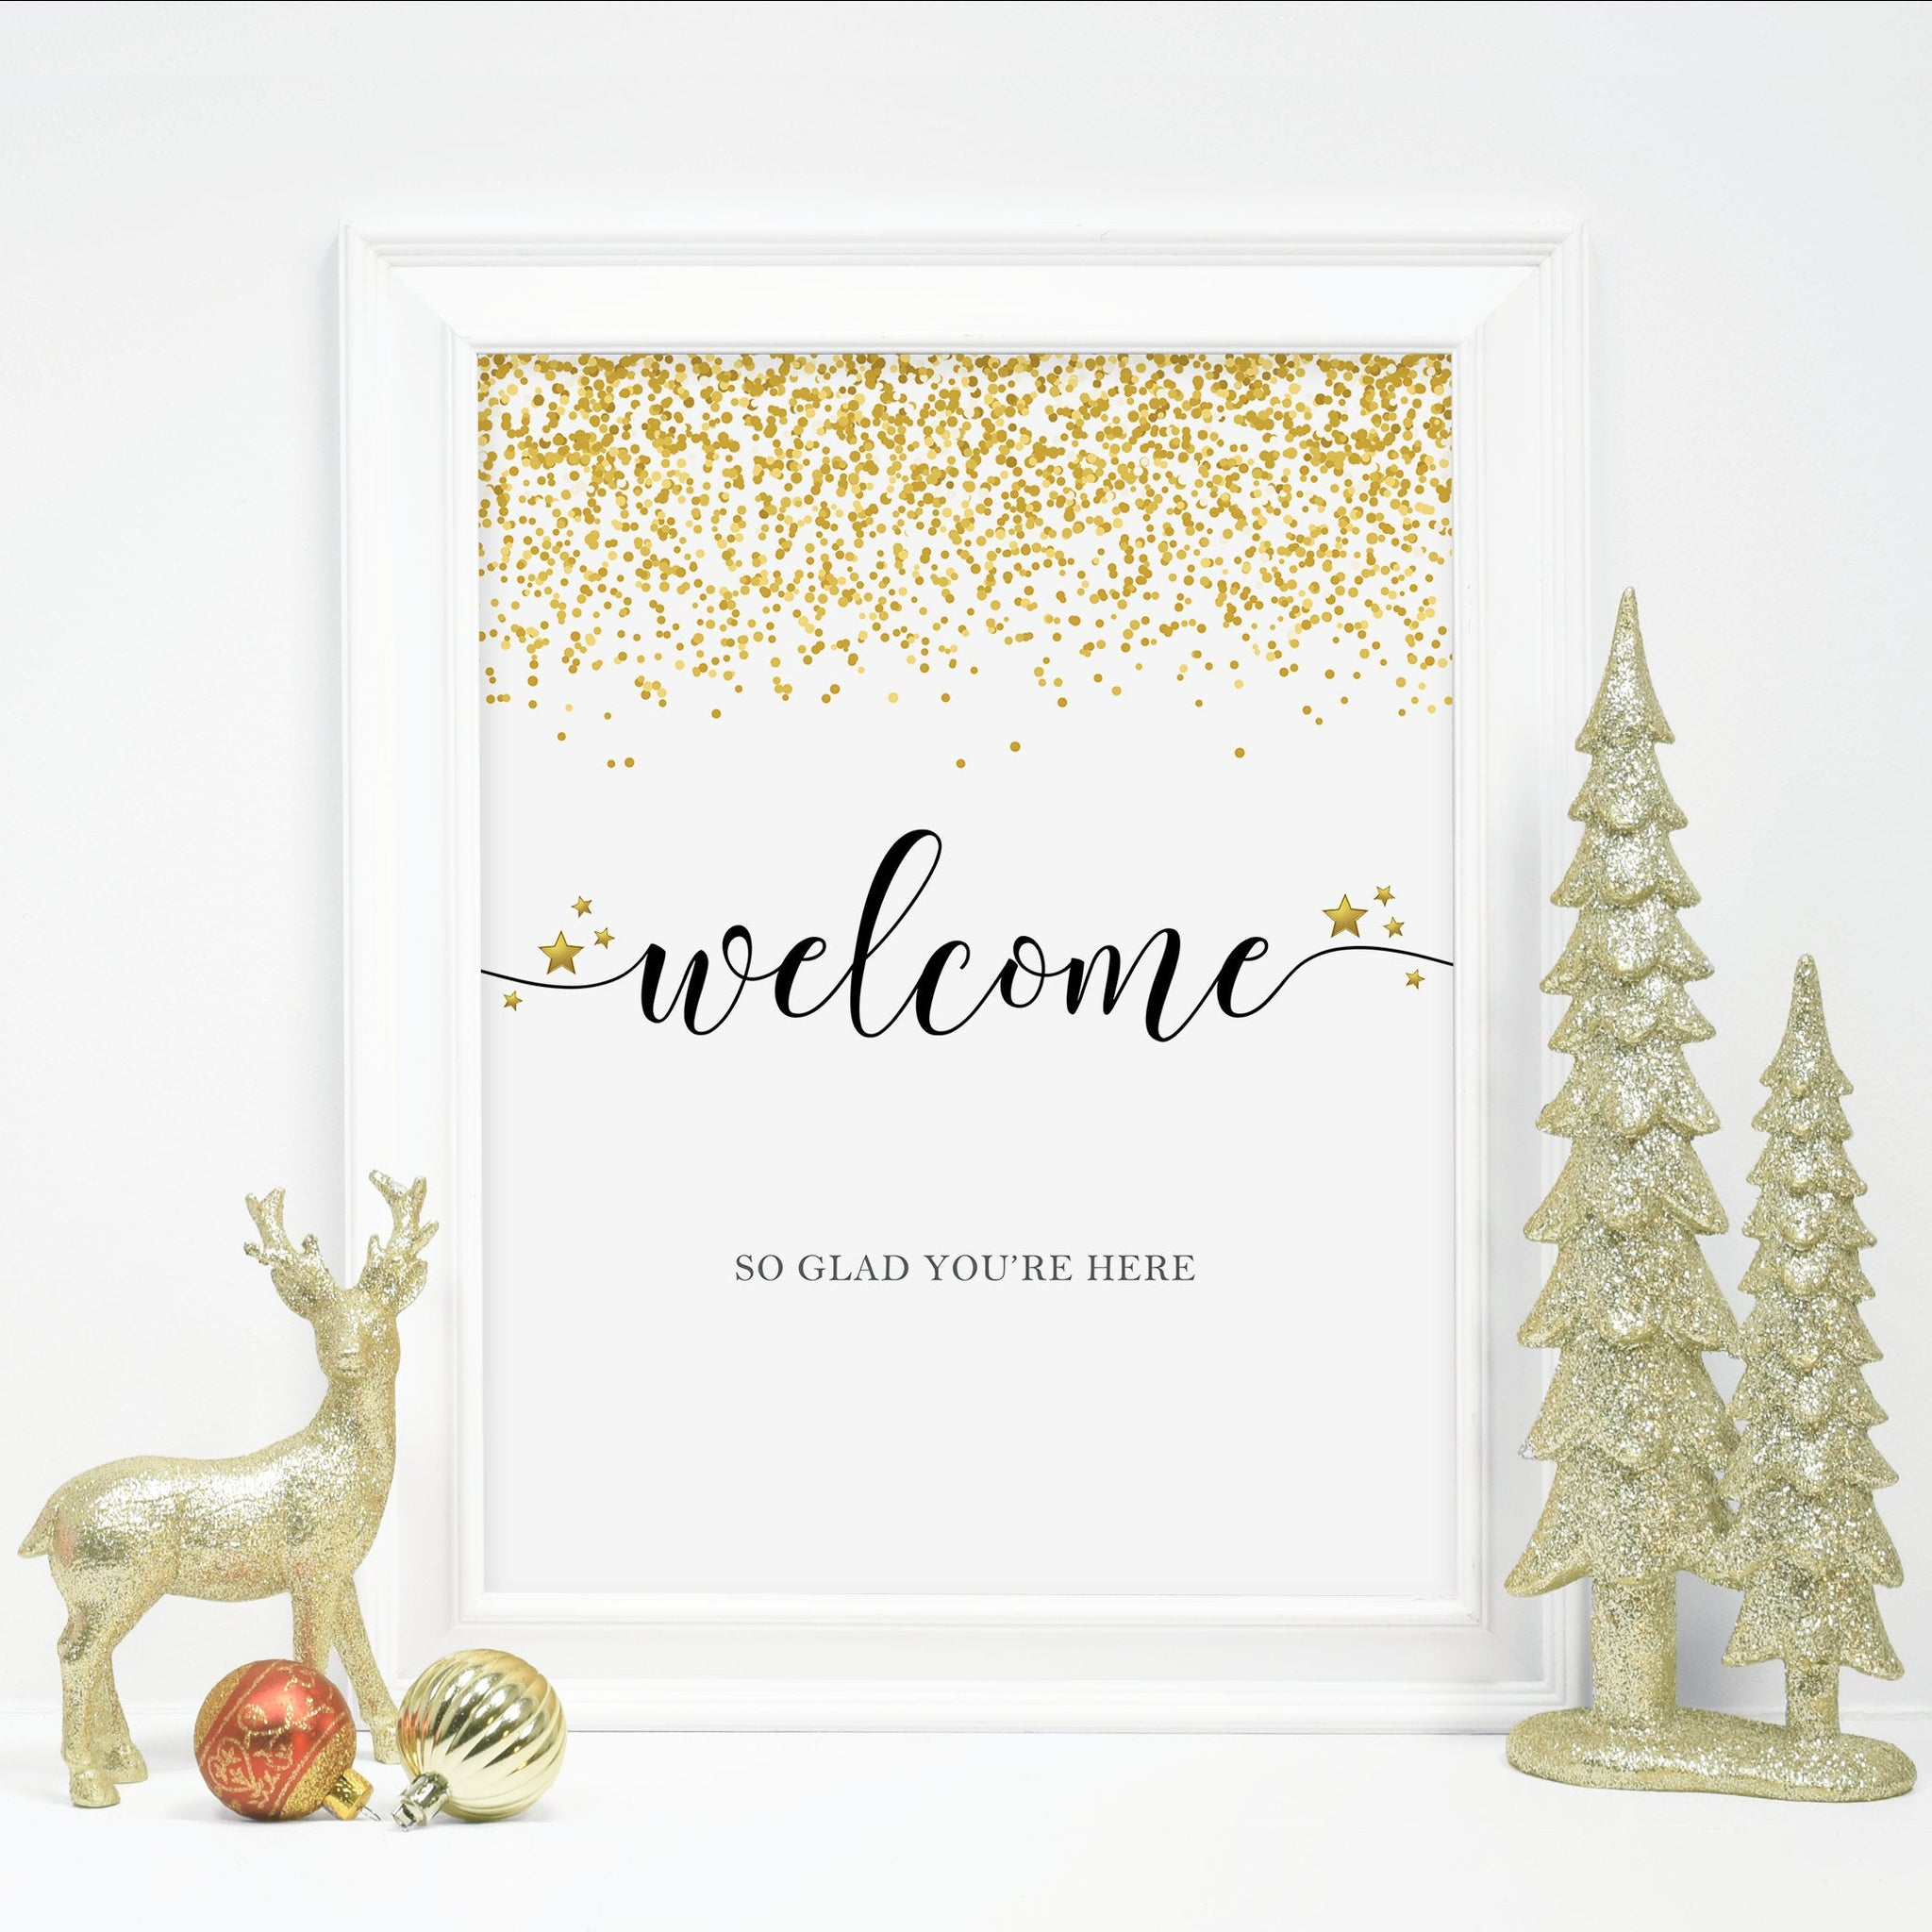 New Years Eve Party Welcome Sign Printable, New Years Eve Decorations, 2020 New Years Eve Party Sign, 2021 New Years, DIGITAL DOWNLOAD NY100